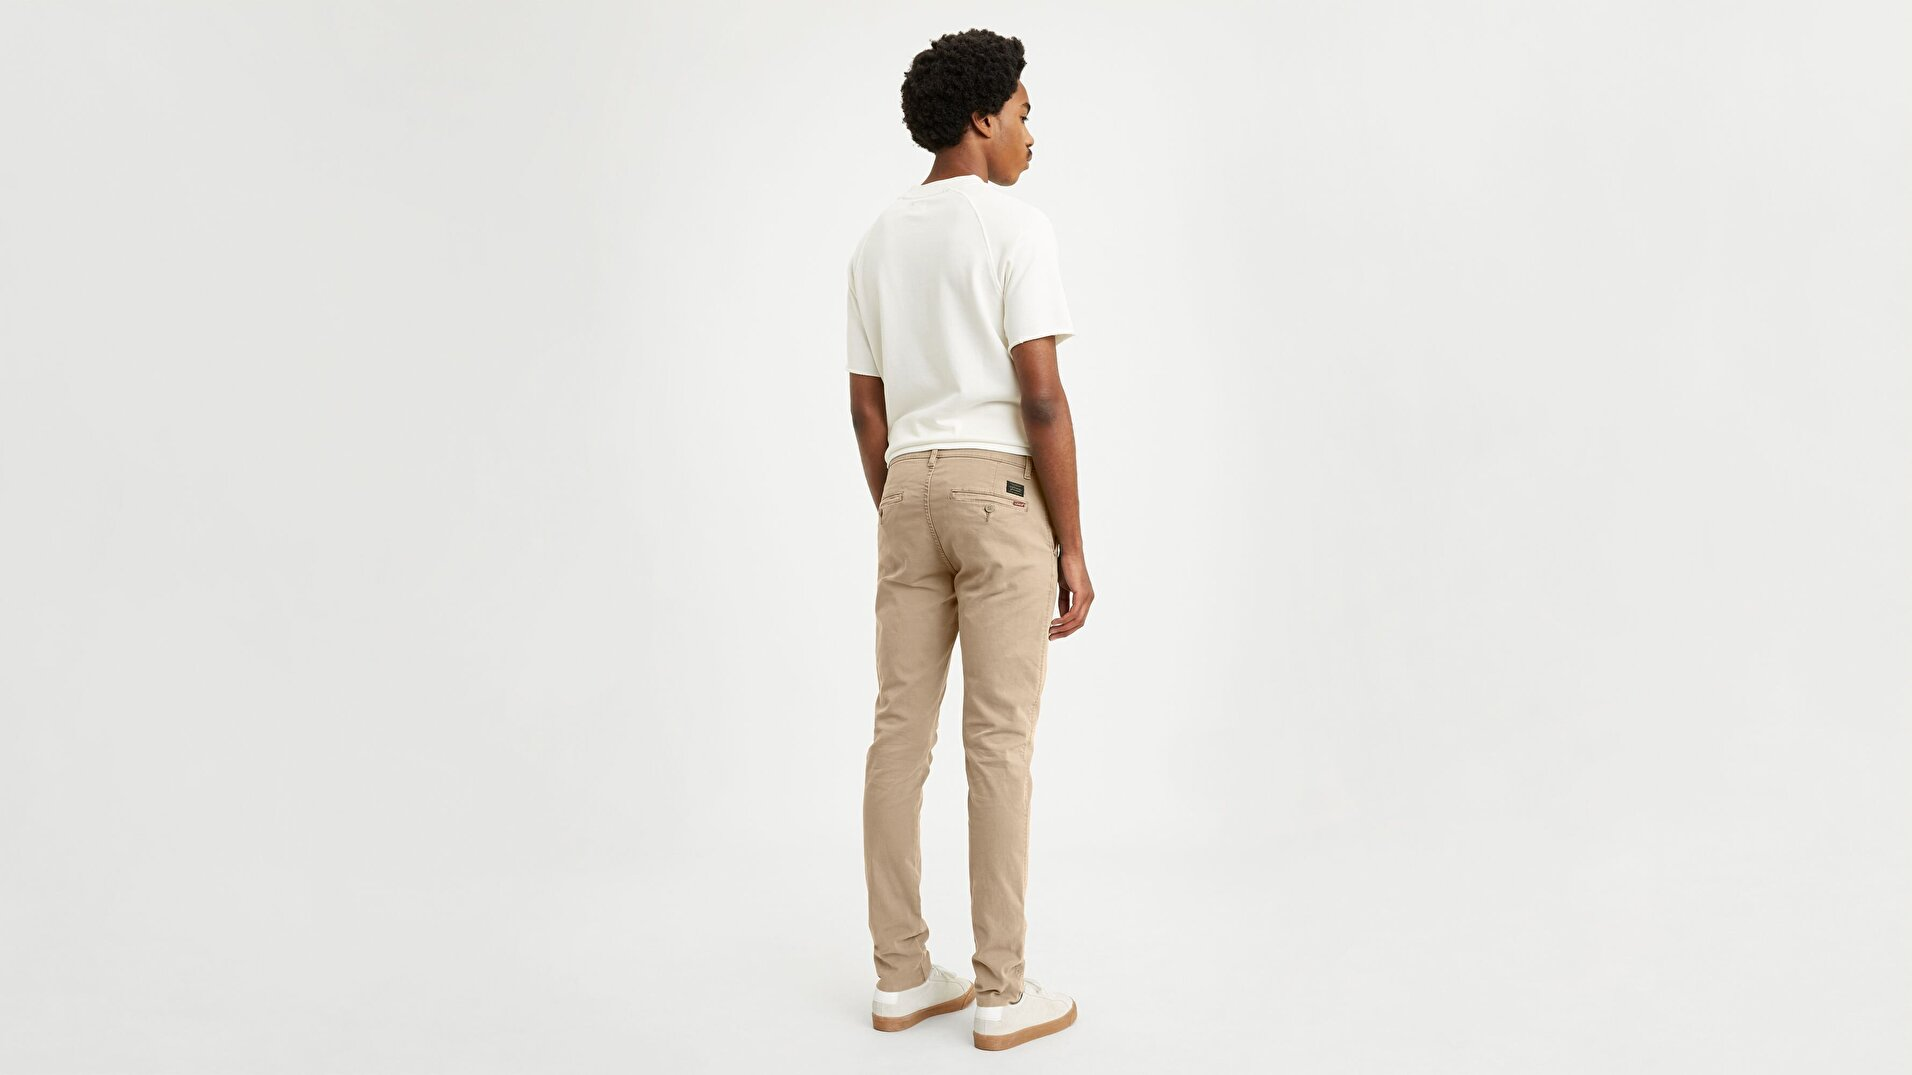 XX Chino Slim Fit Erkek Pantolon-True Chino Shady Gd Ccu B